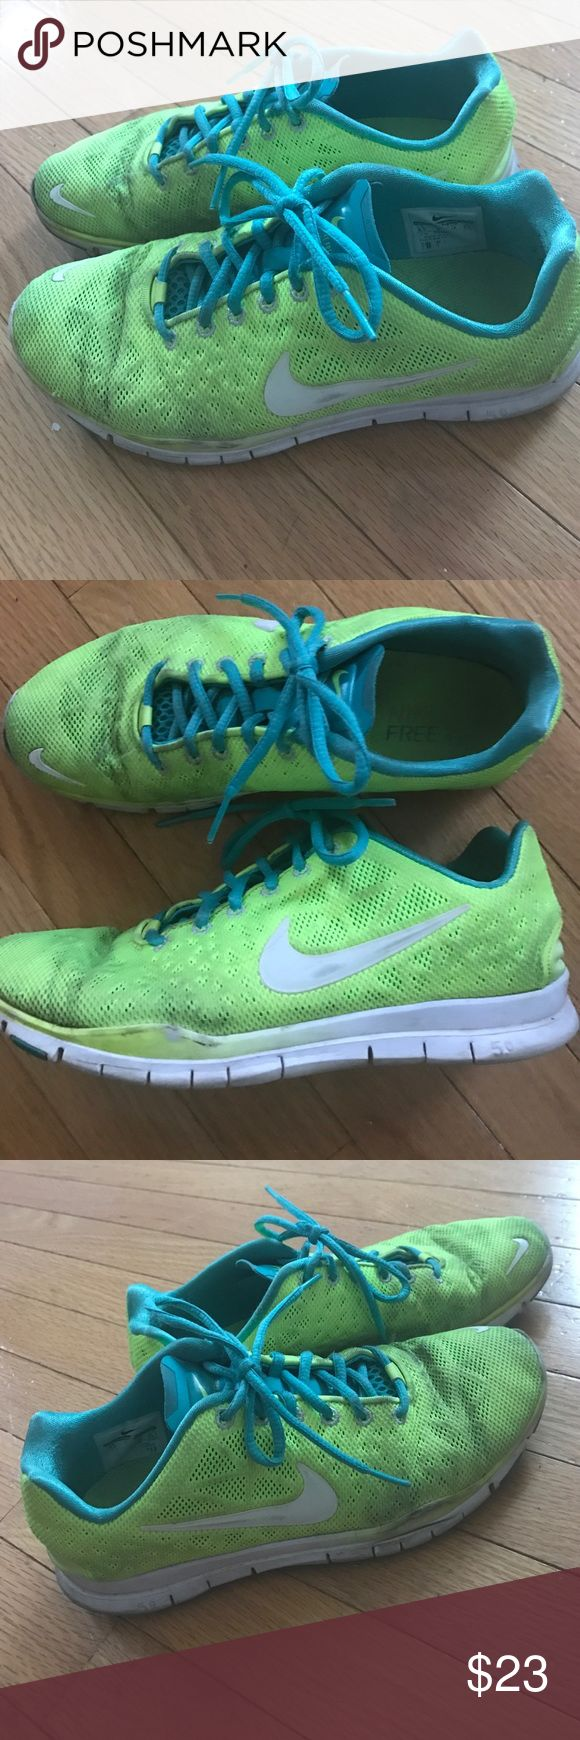 Nike free tr fit 3 breathe green yellow sneakers Probably the most comfortable sneakers I've ever owned. Size 8.5 Nike Shoes Sneakers